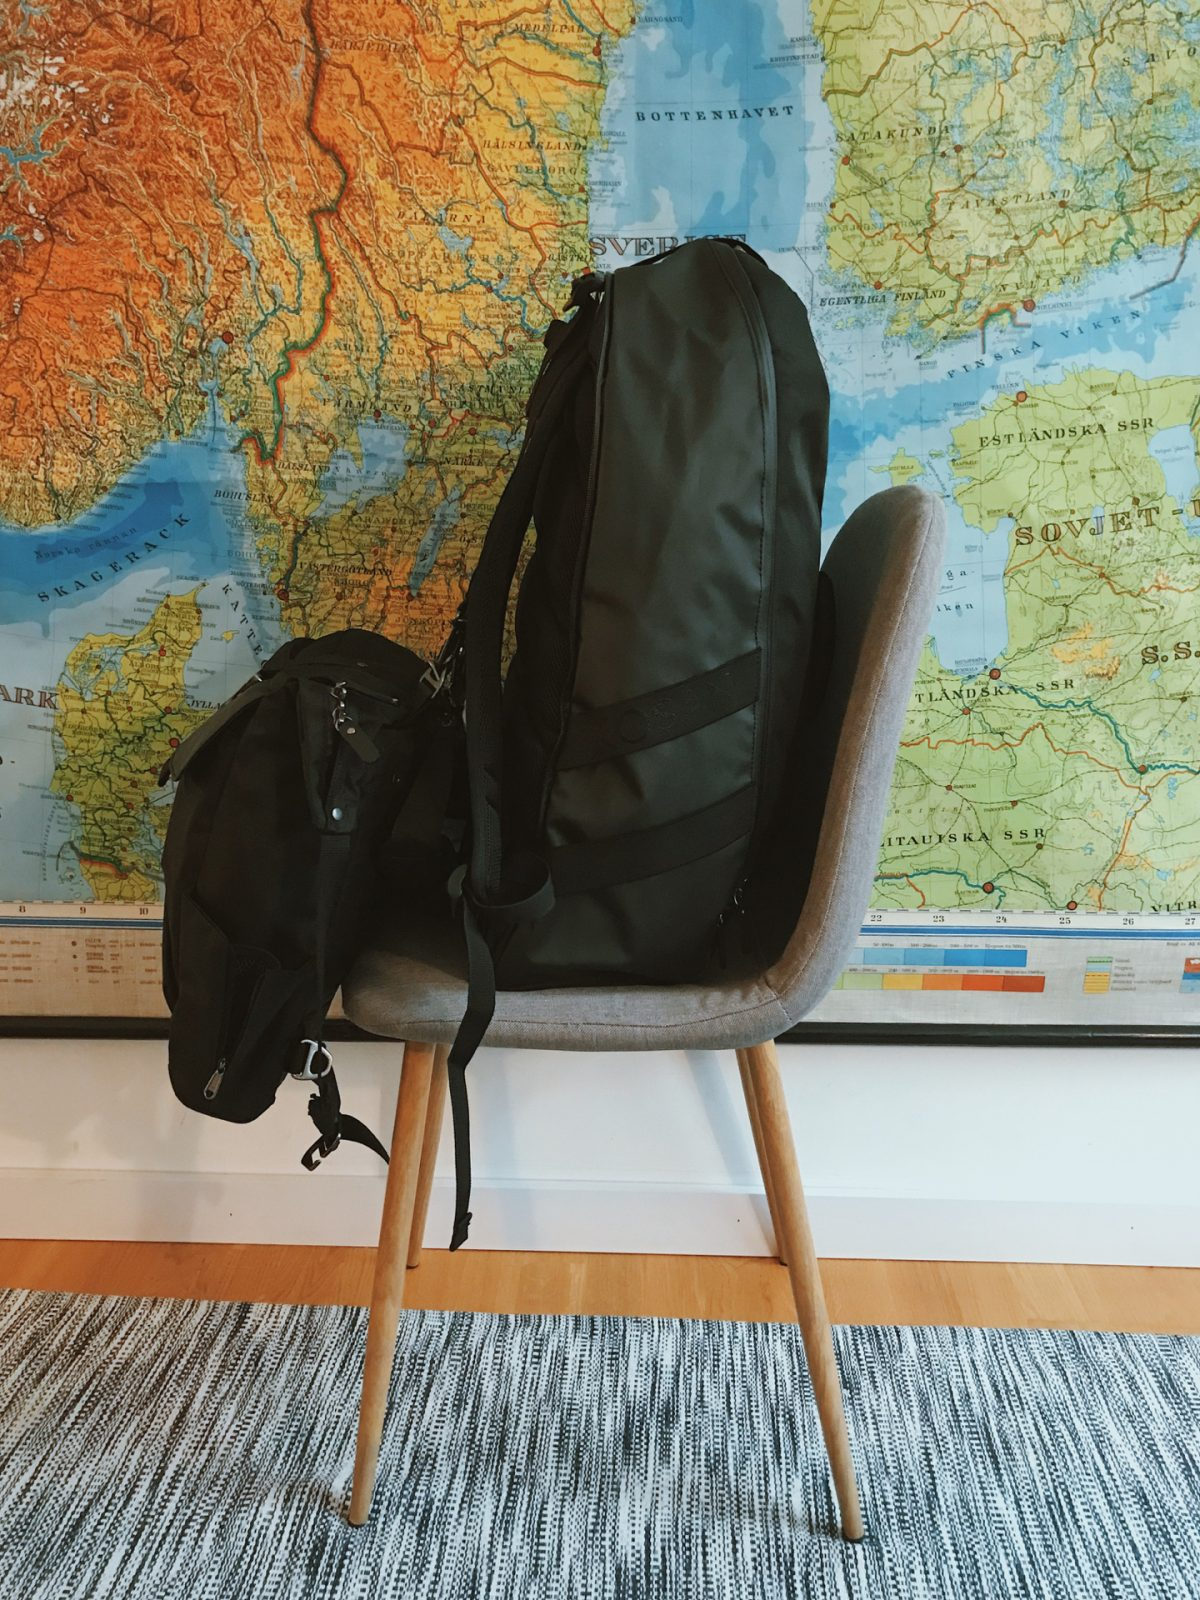 A backpacking set of bags on a grey chair in front of a map